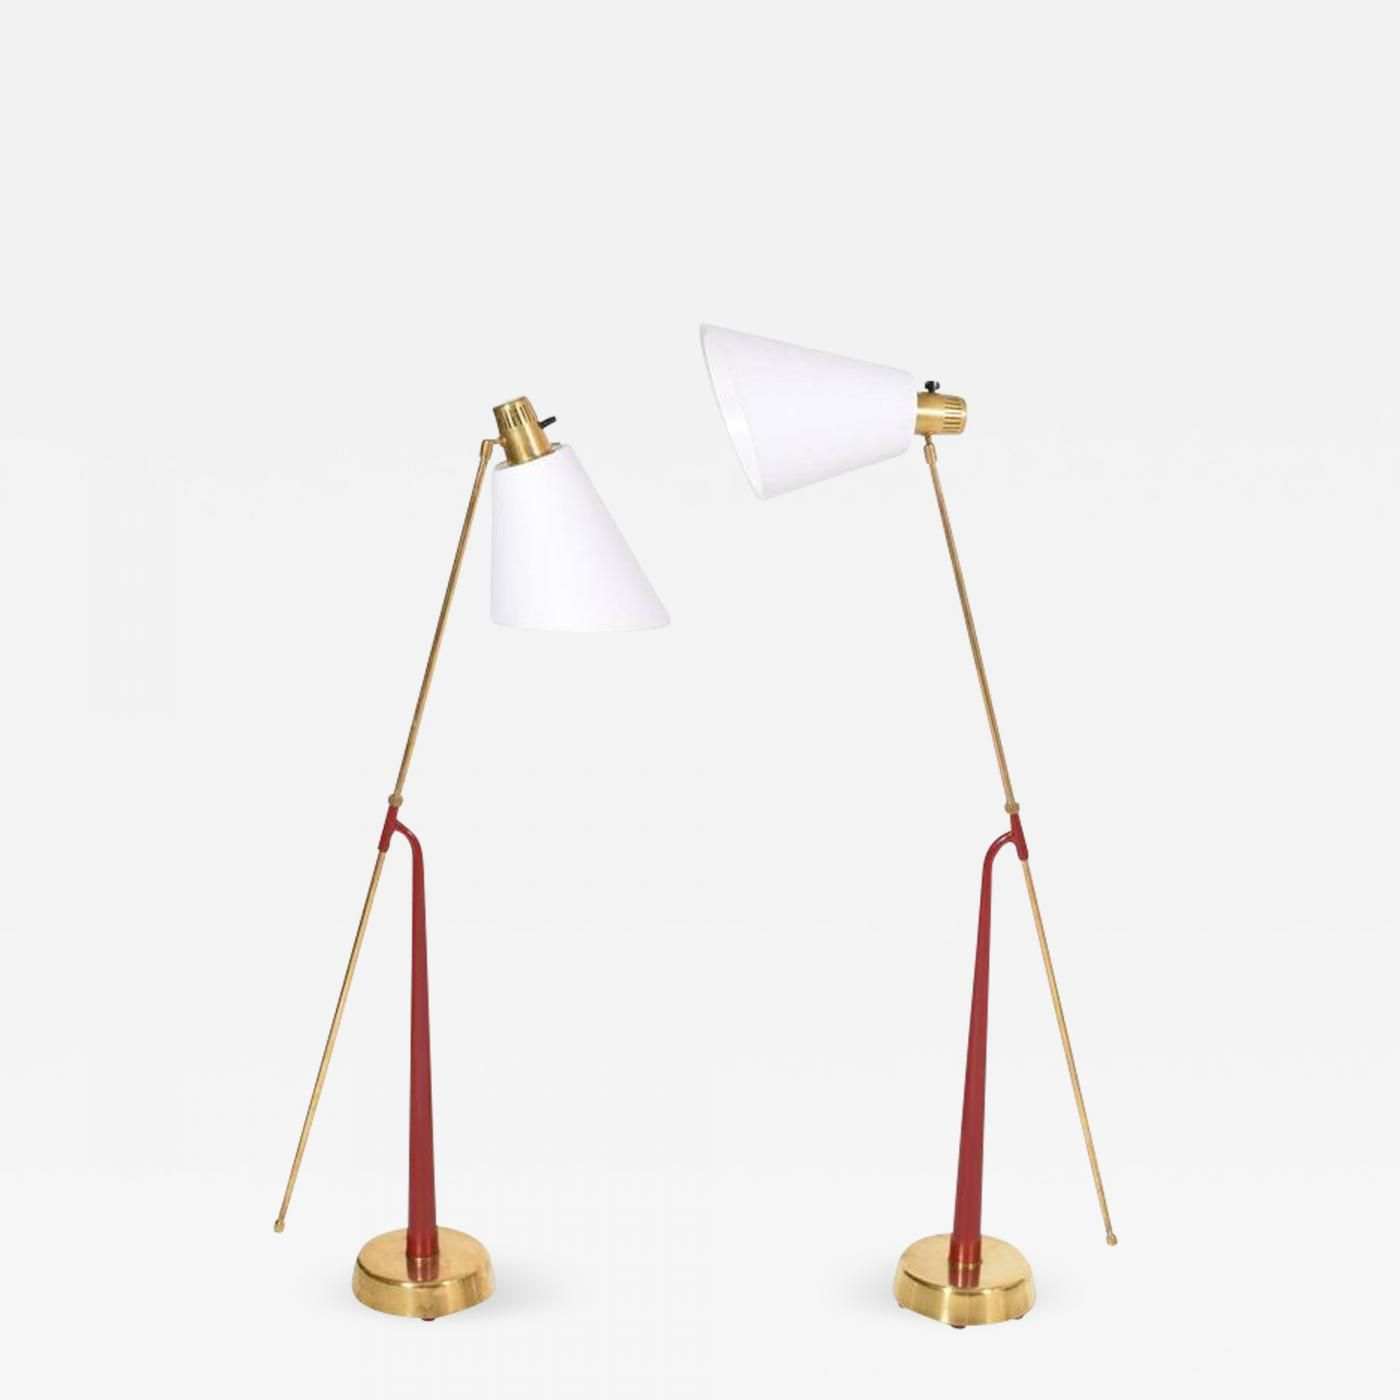 Pair of Floor Lamps by Hans Bergstrom for Ateljé Lyktan c 1950